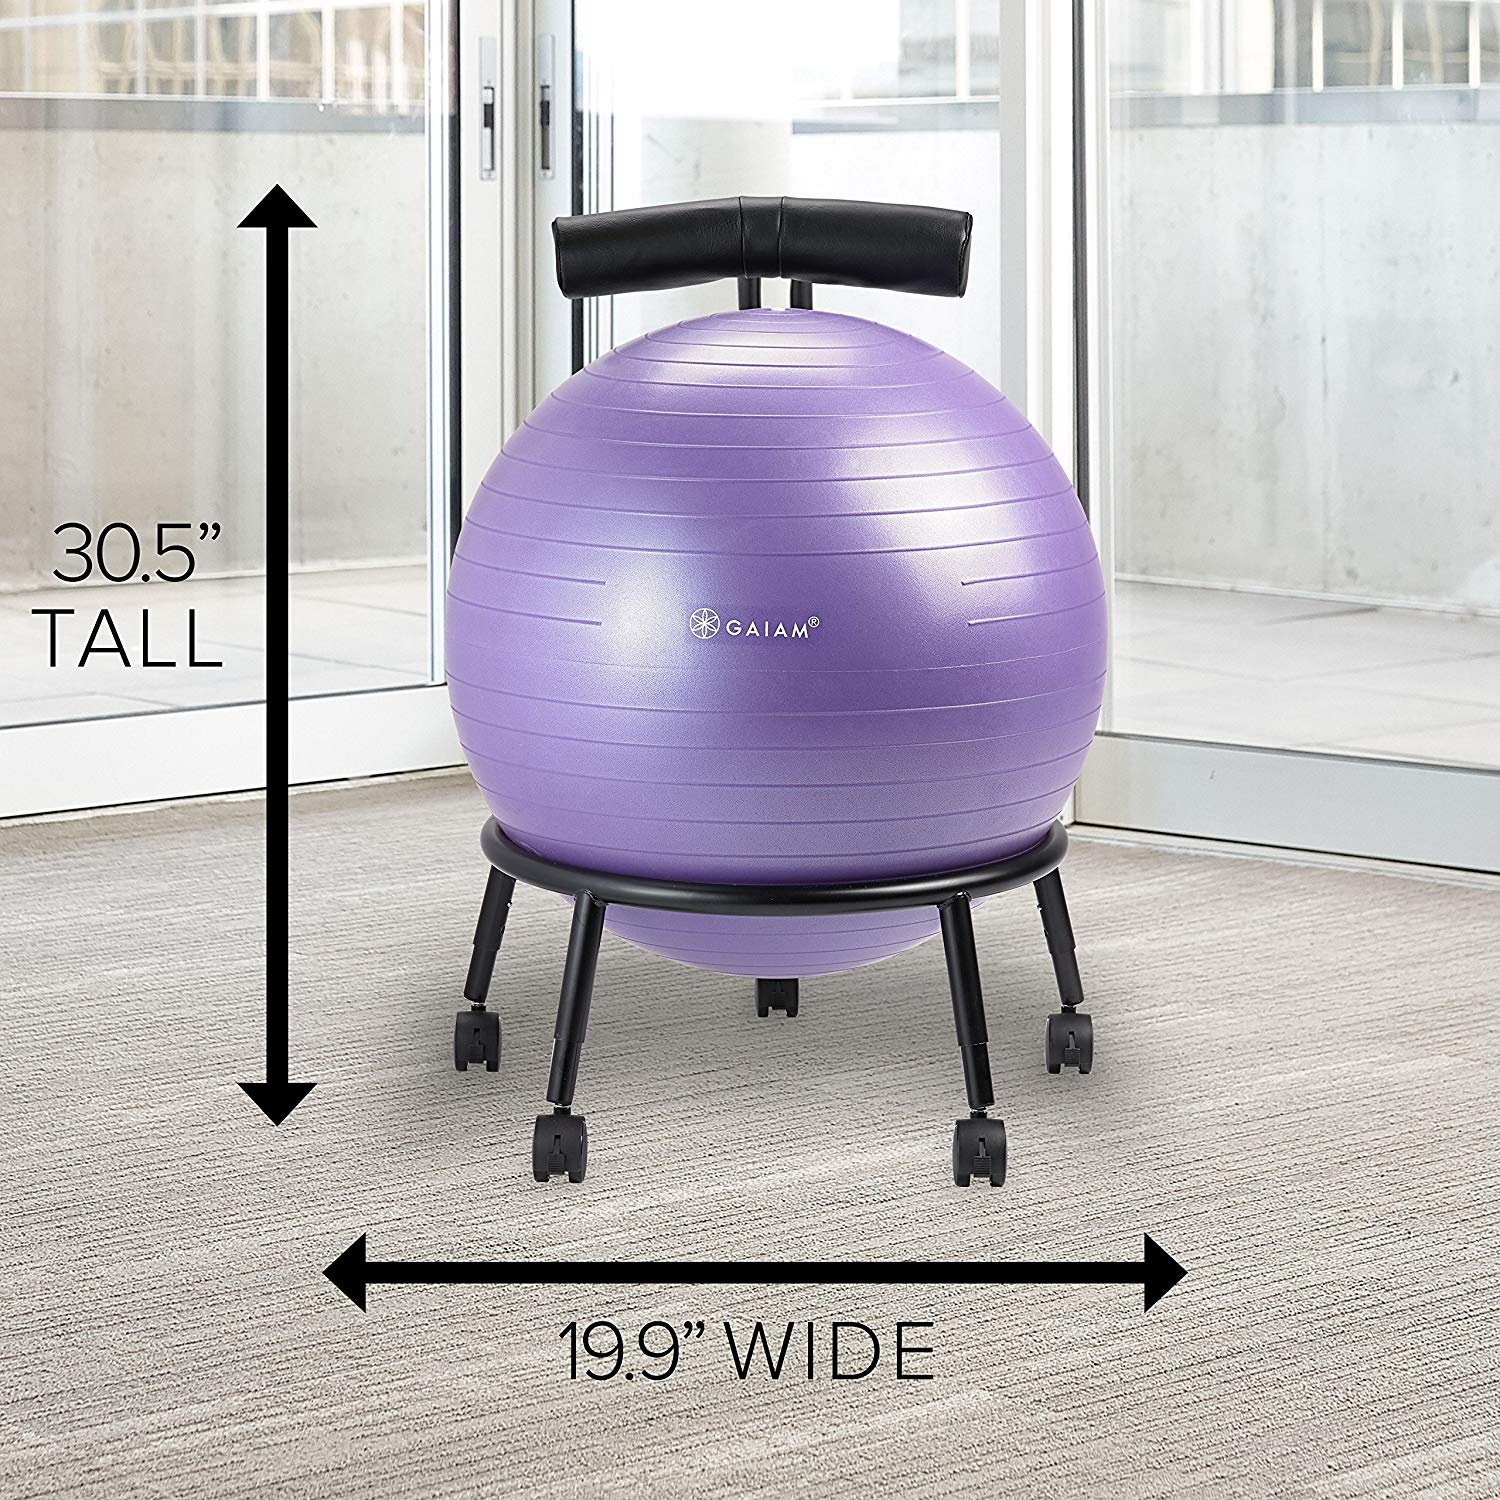 Exercise Ball Desk Chair Gaiam Adjustable Custom Fit Balance Ball Chair Stability Ball Desk Chair With 55cm Yoga Ball Inflation Pump And Exercise Guide For Home Or Office